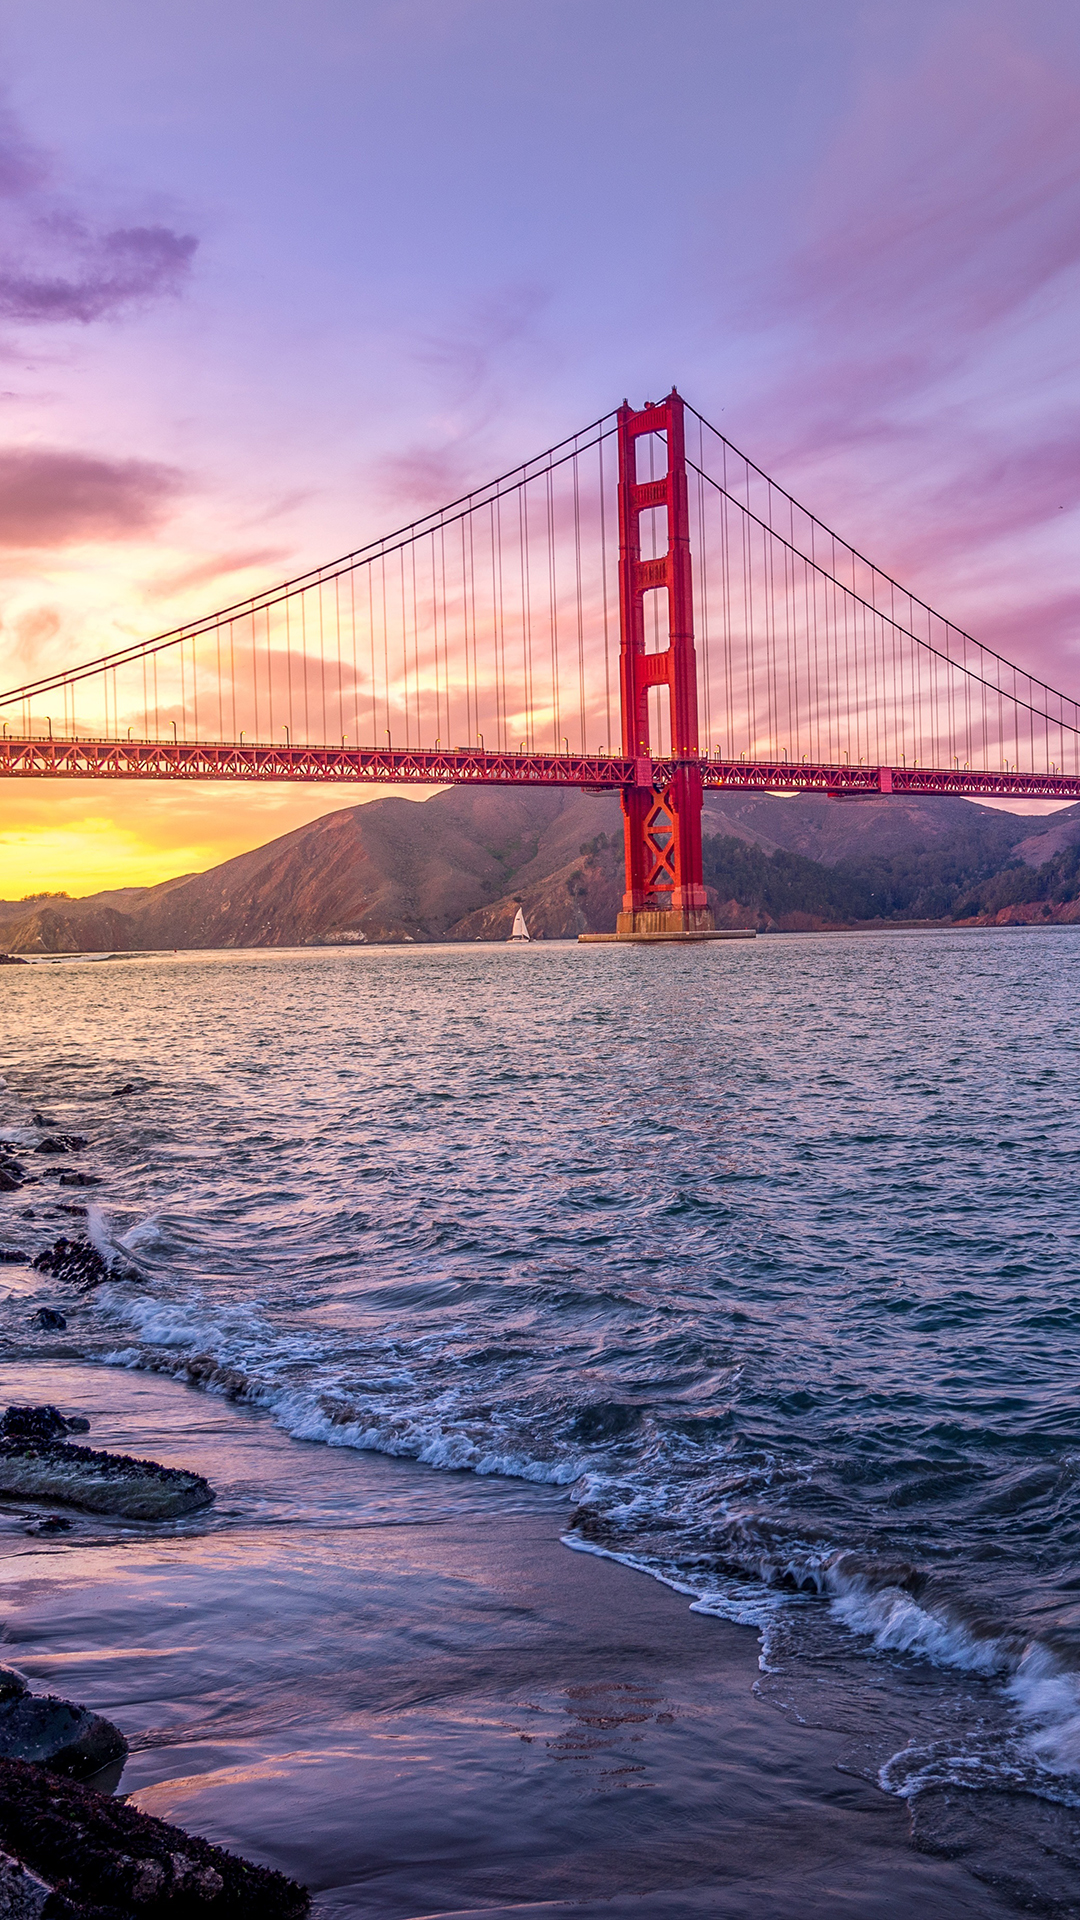 Dimensions Of A Wallpaper For Iphone X Golden Gate Hd Wallpaper For Your Mobile Phone